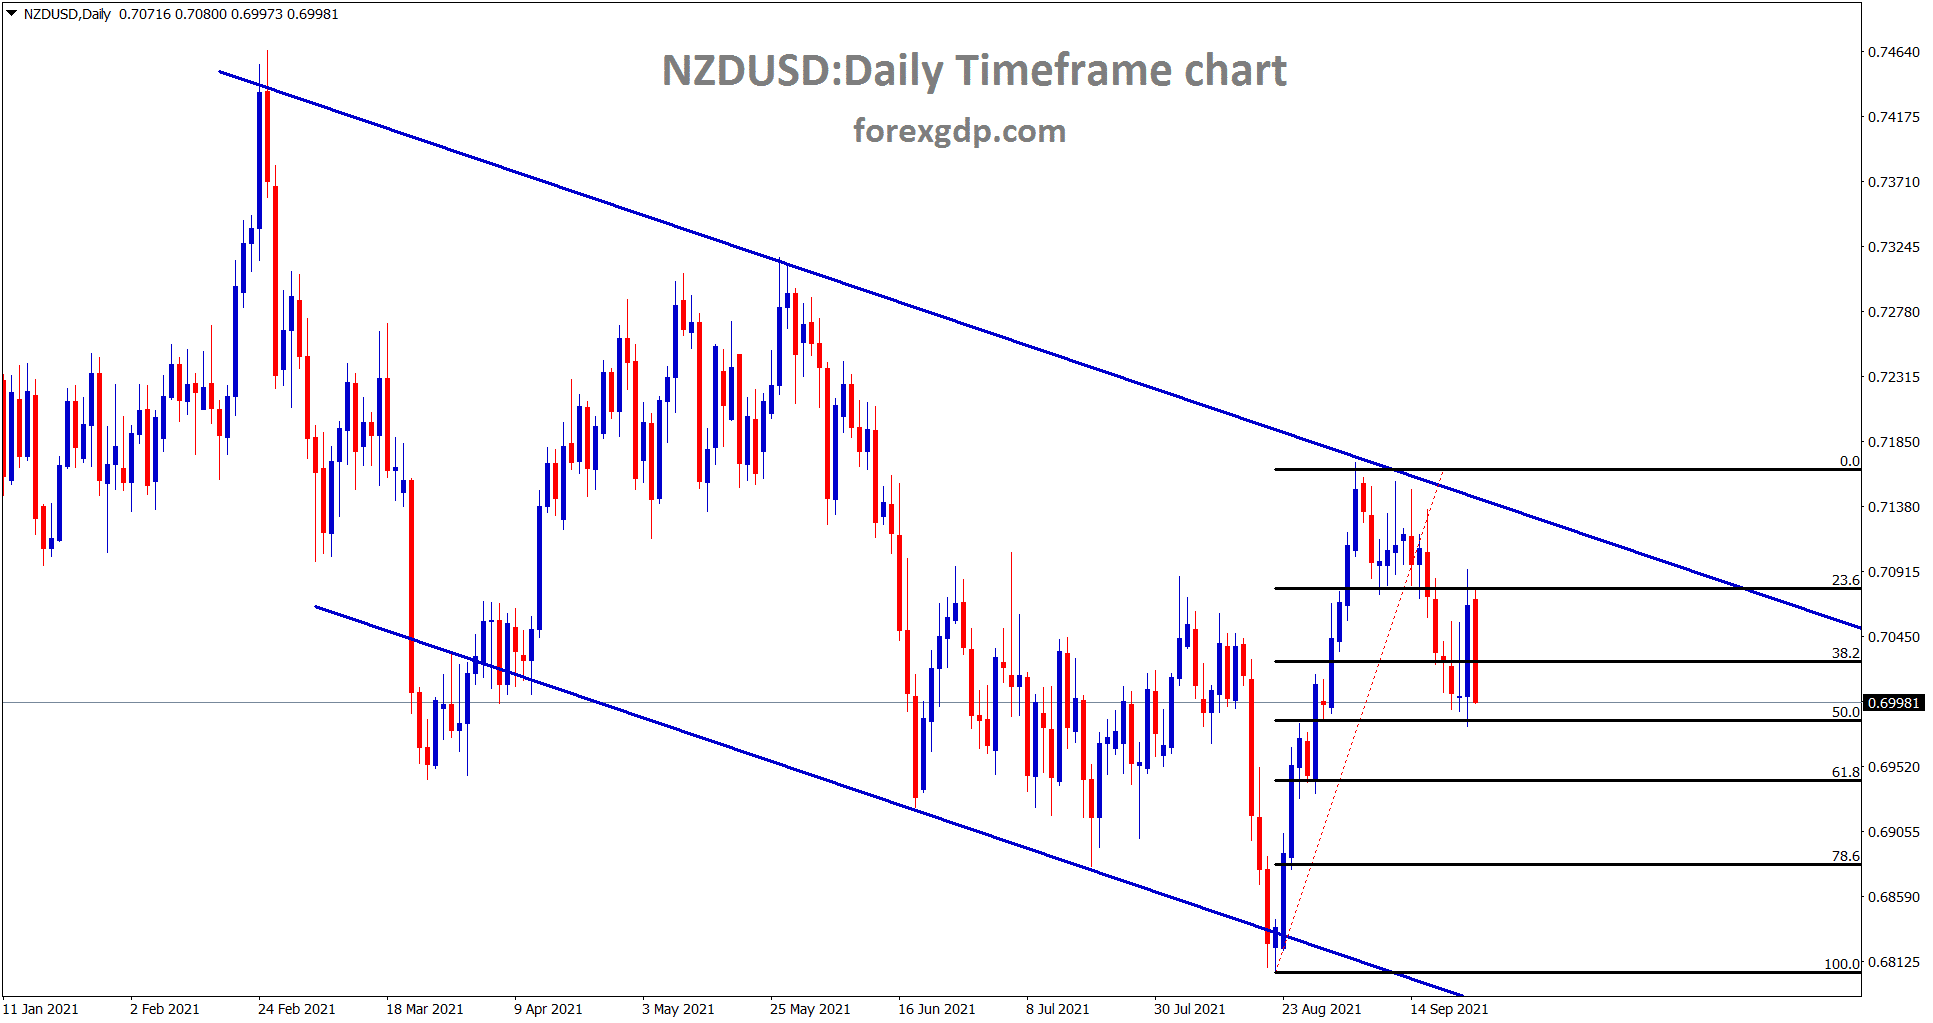 NZDUSD has made 50 retracement its now trying to fall further.